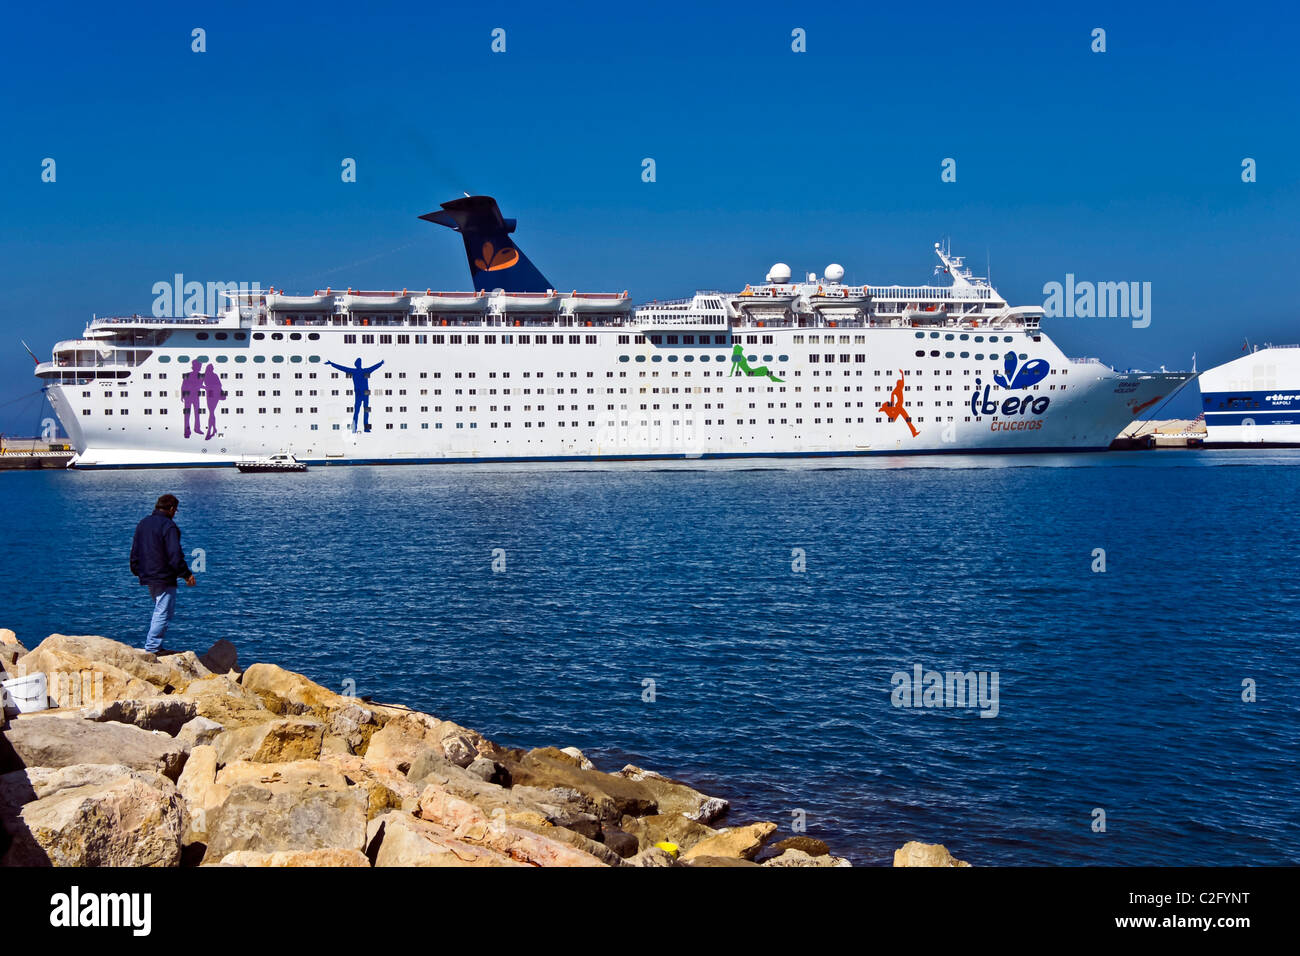 Cruise ship Grand Holiday of Ibero Cruises at Porto Torres in Sardinia Italy. - Stock Image